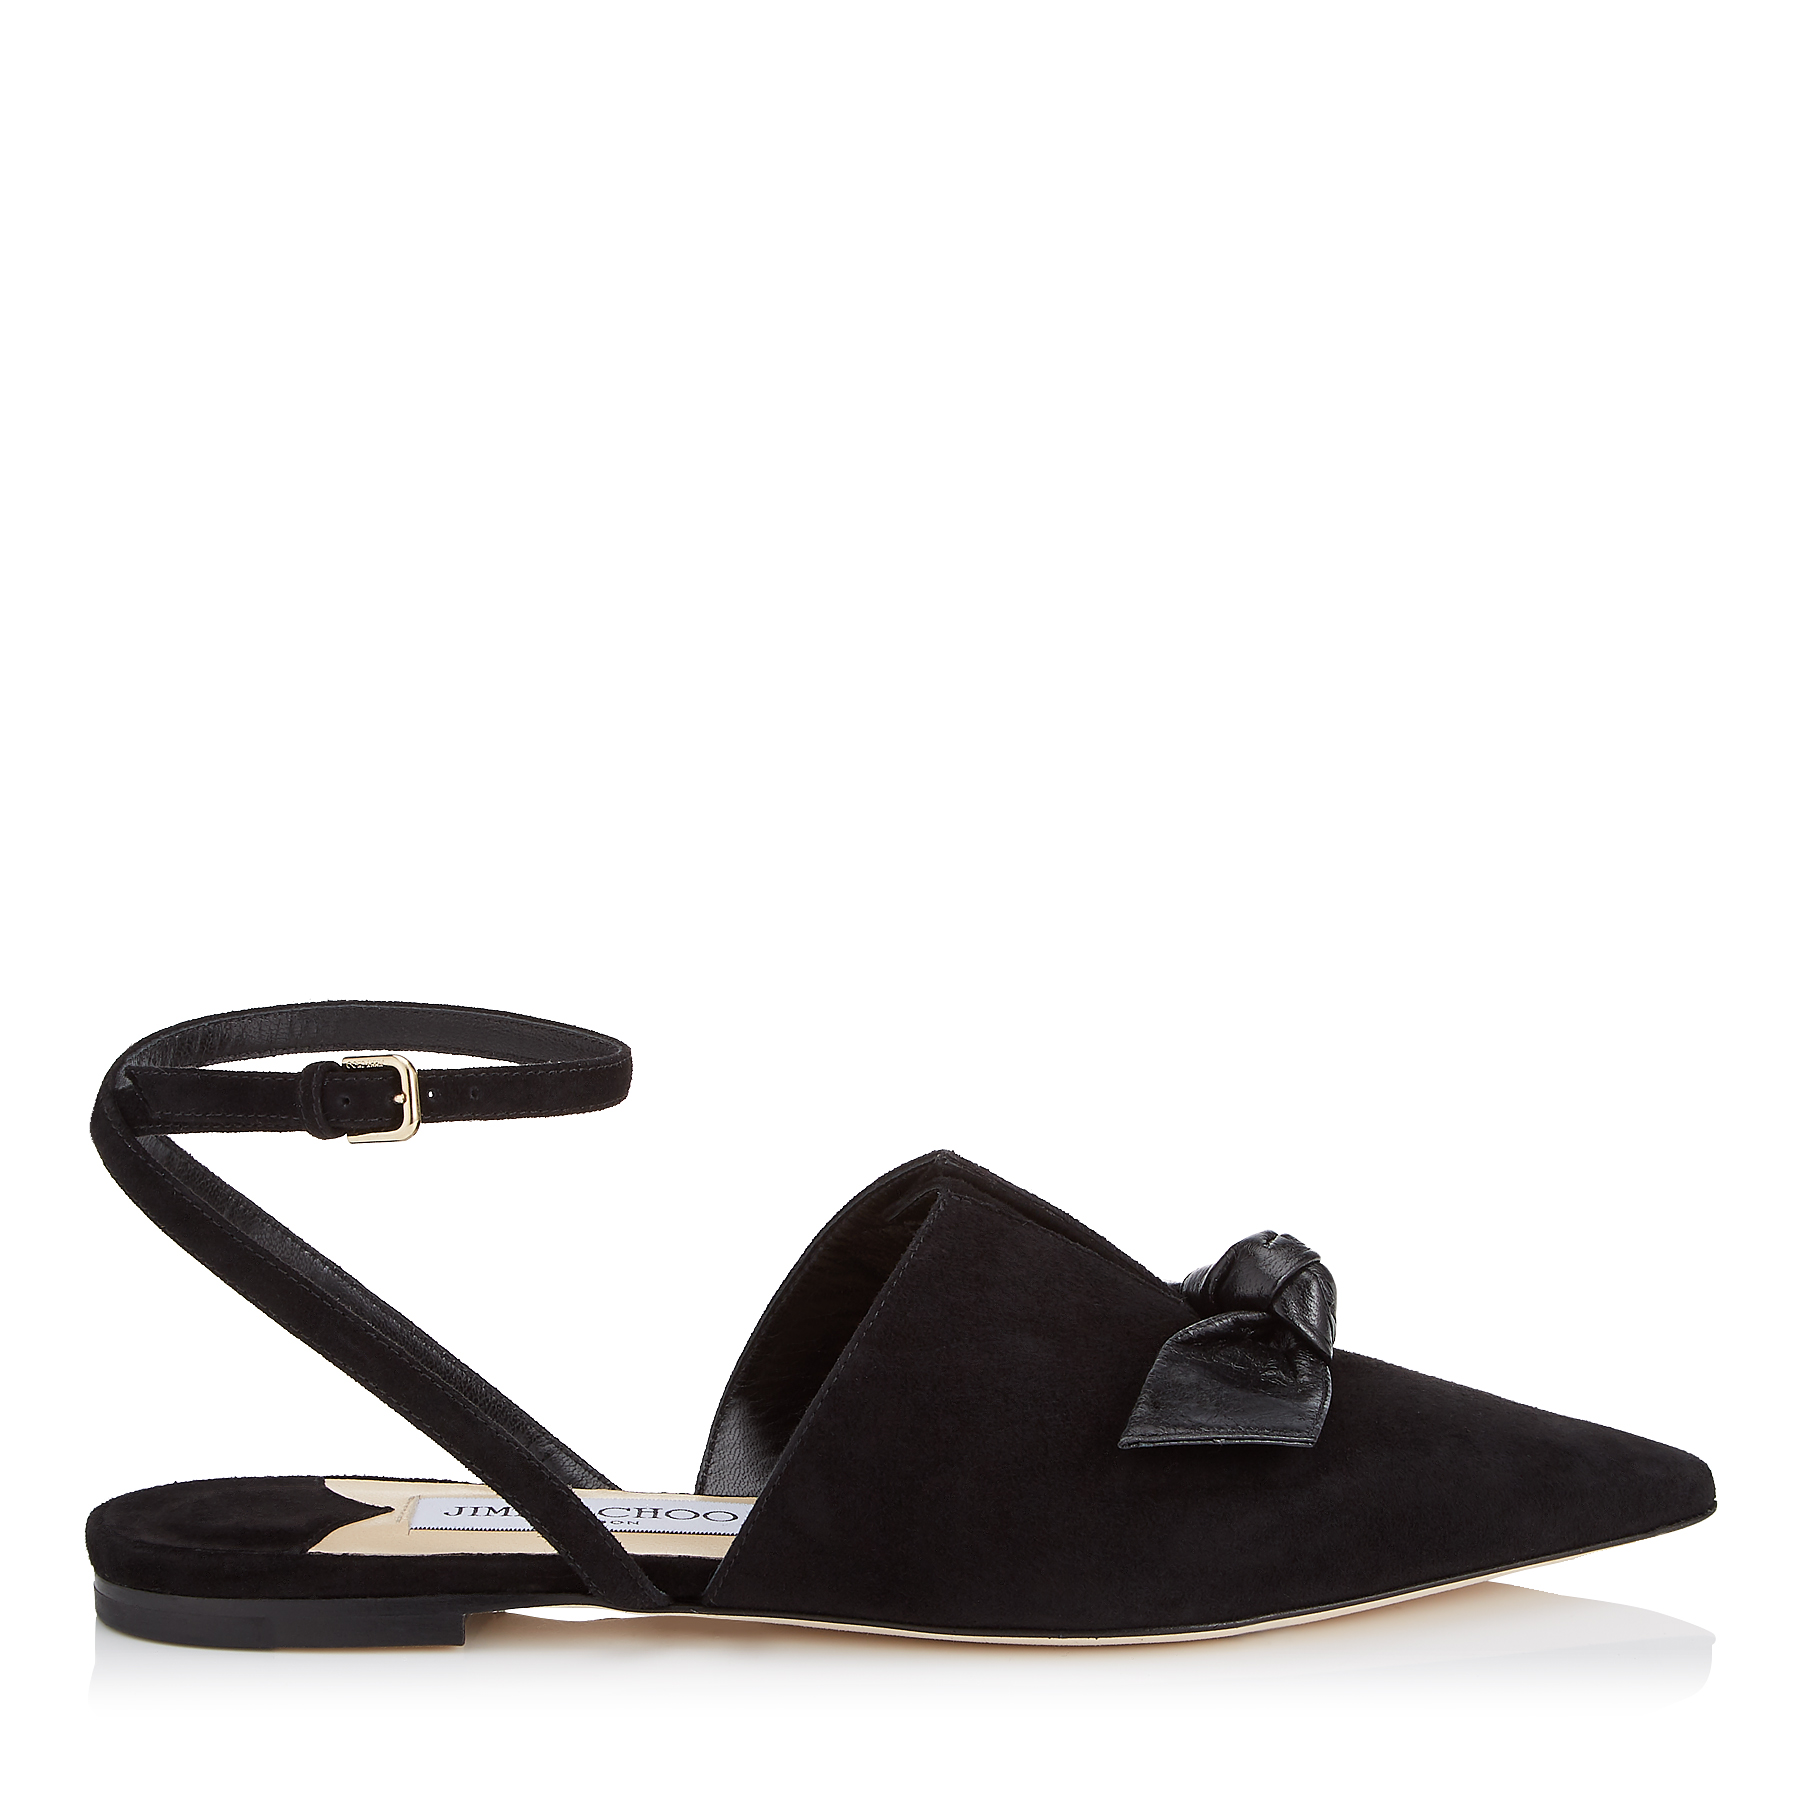 TEMPLE FLAT Black Suede and Kid Leather Pointy Toe Flats by Jimmy Choo